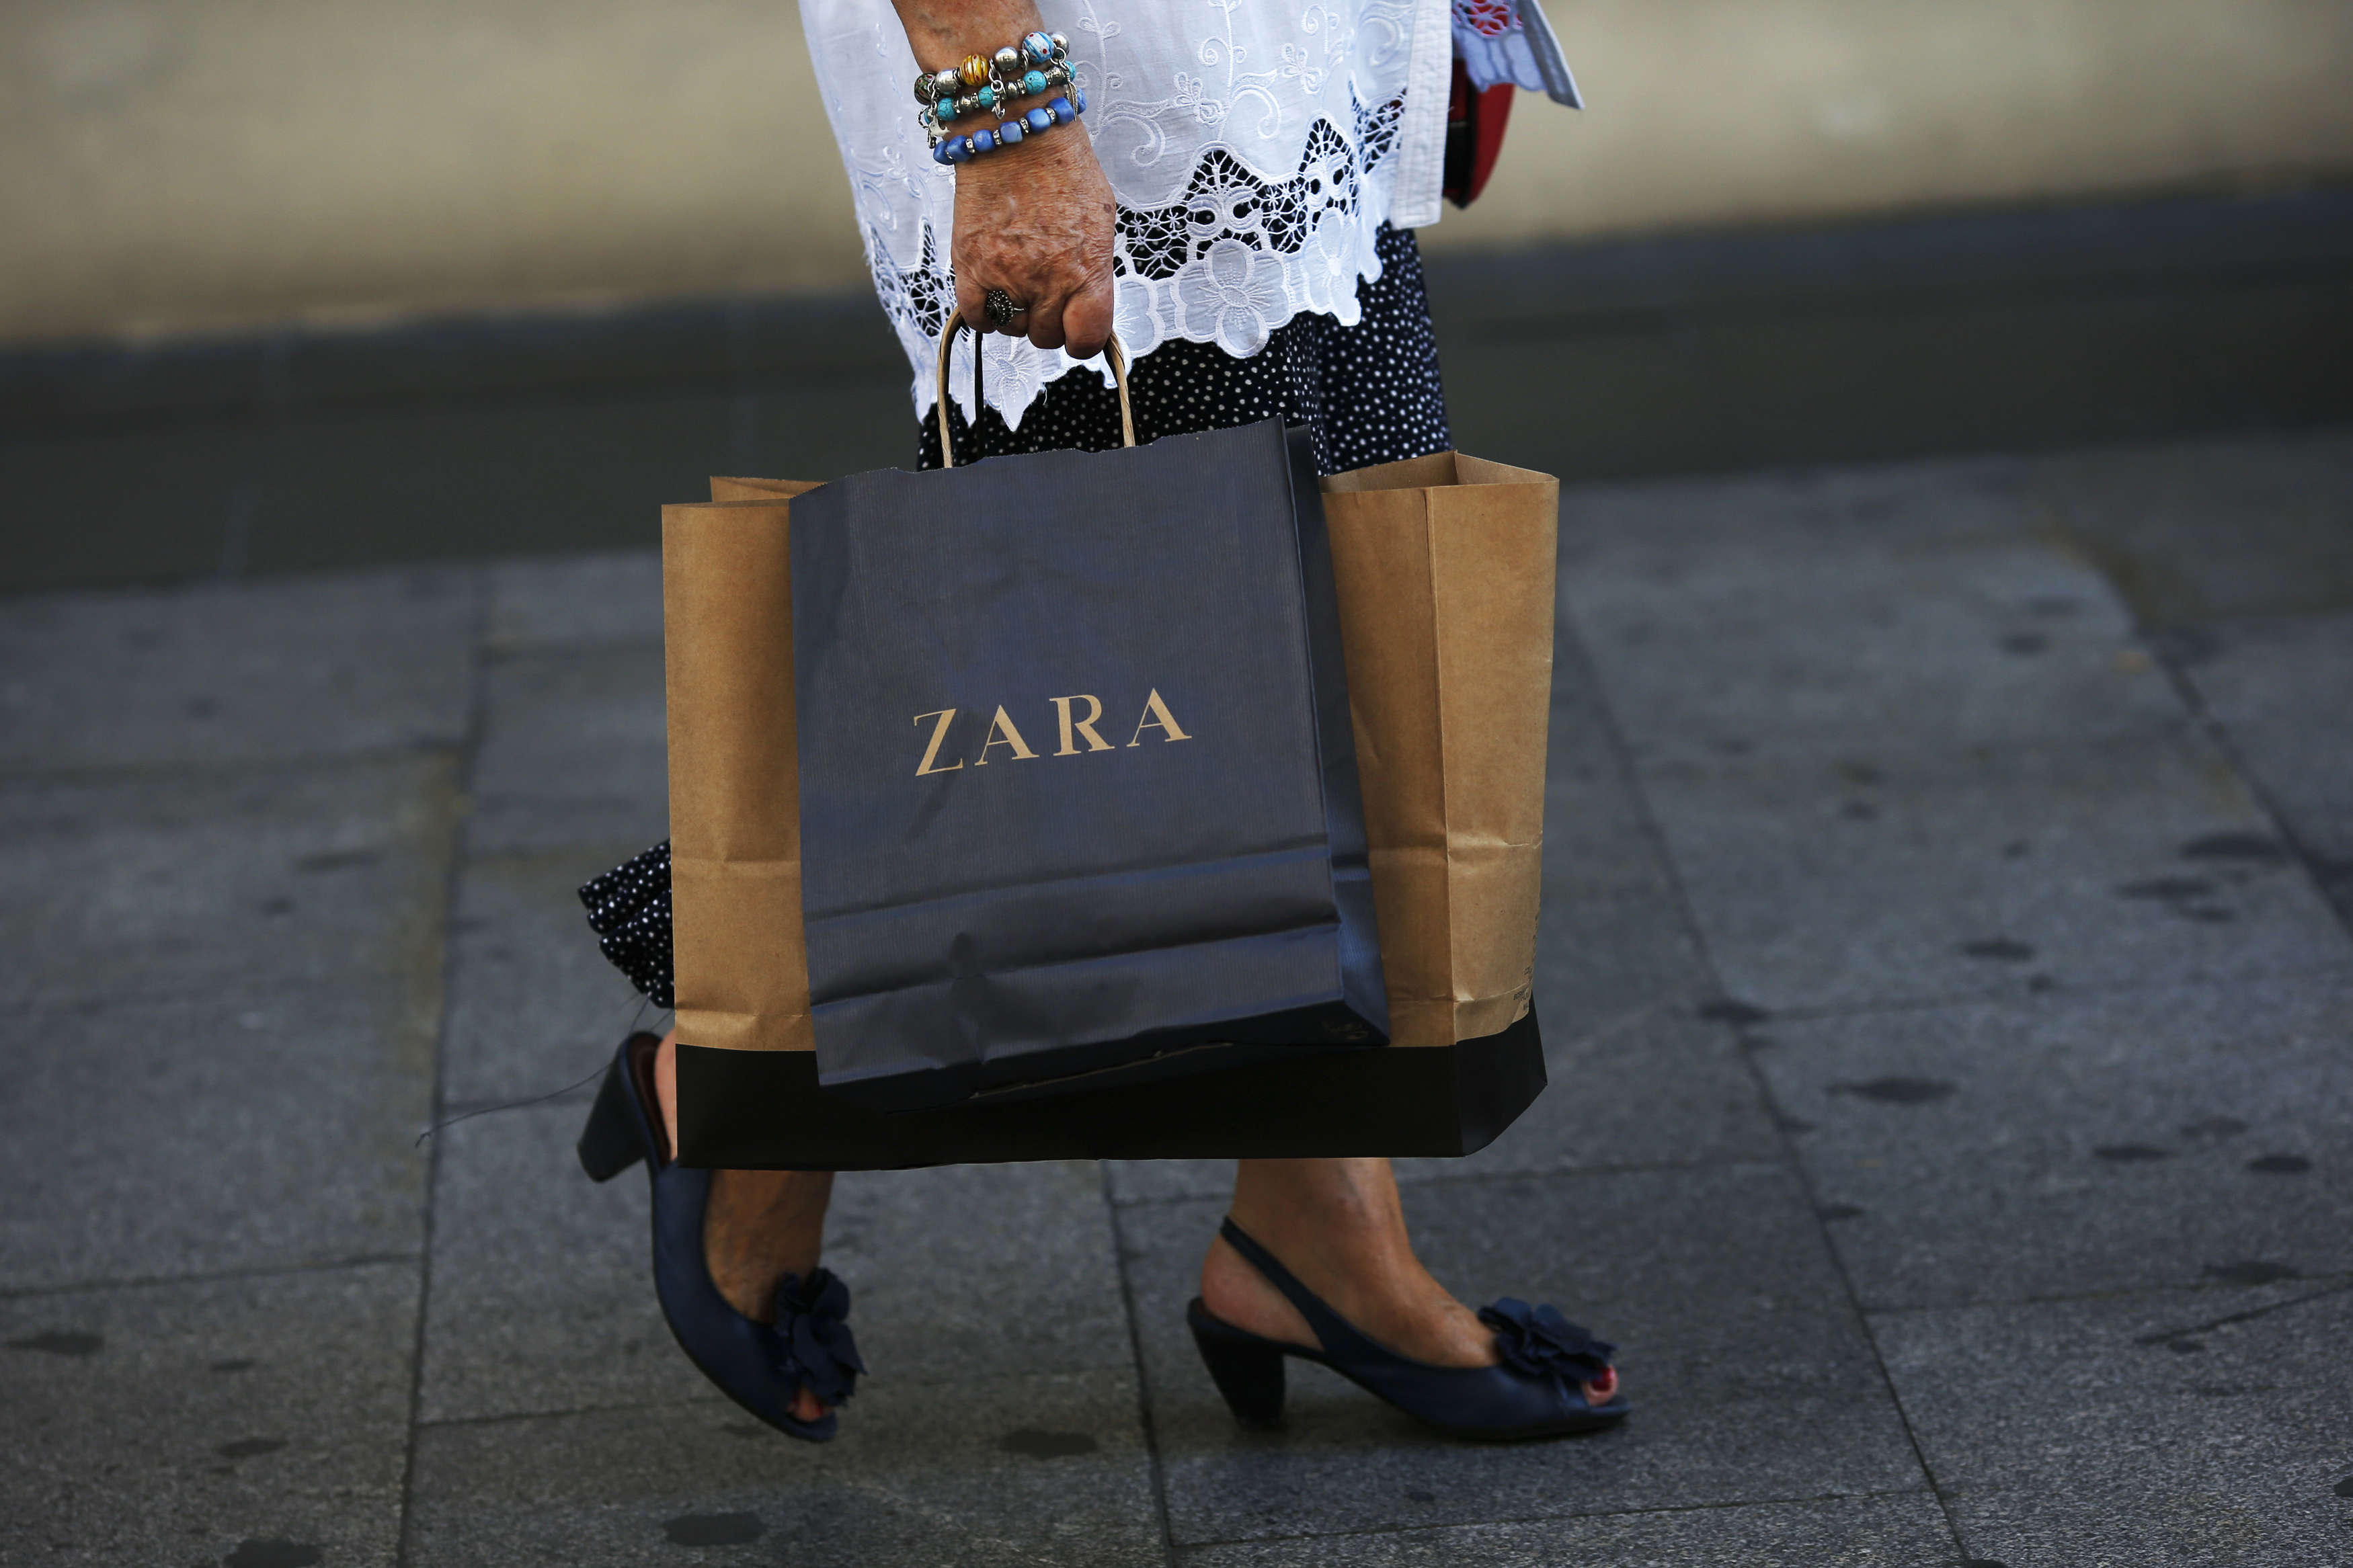 A woman walks with a Zara bag in hand in Madrid, September 19, 2012.